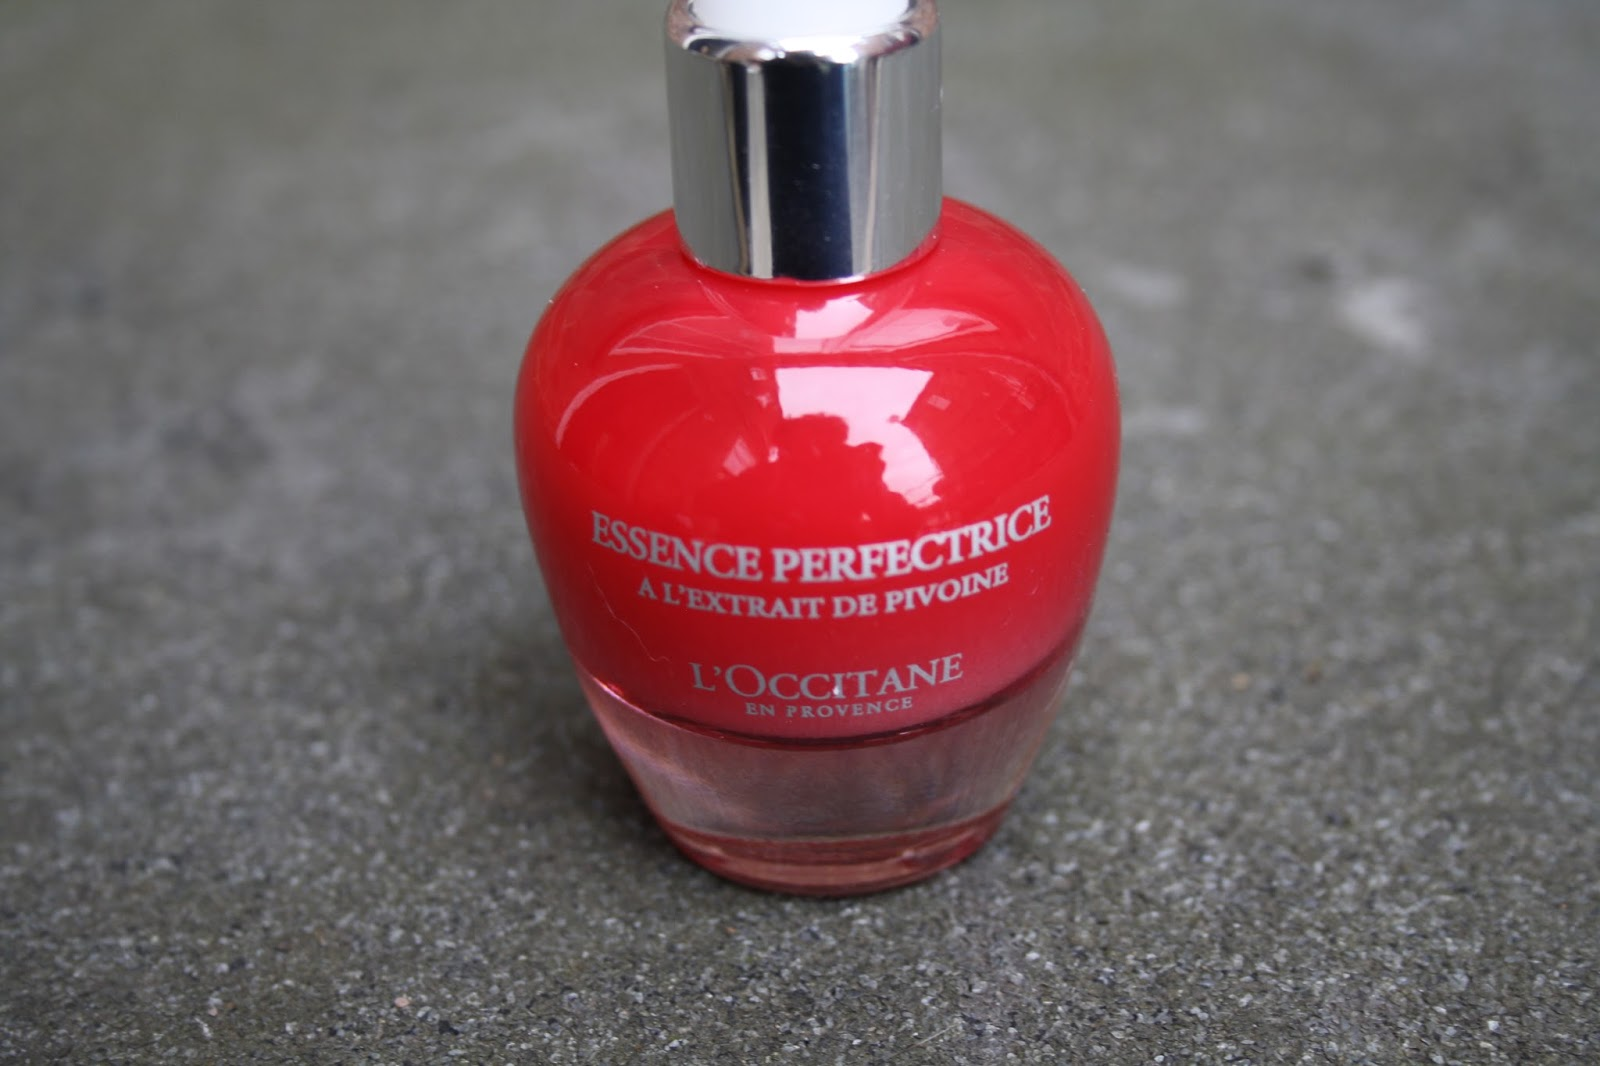 Essence Perfectrice Skin Perfector by L'Occitane